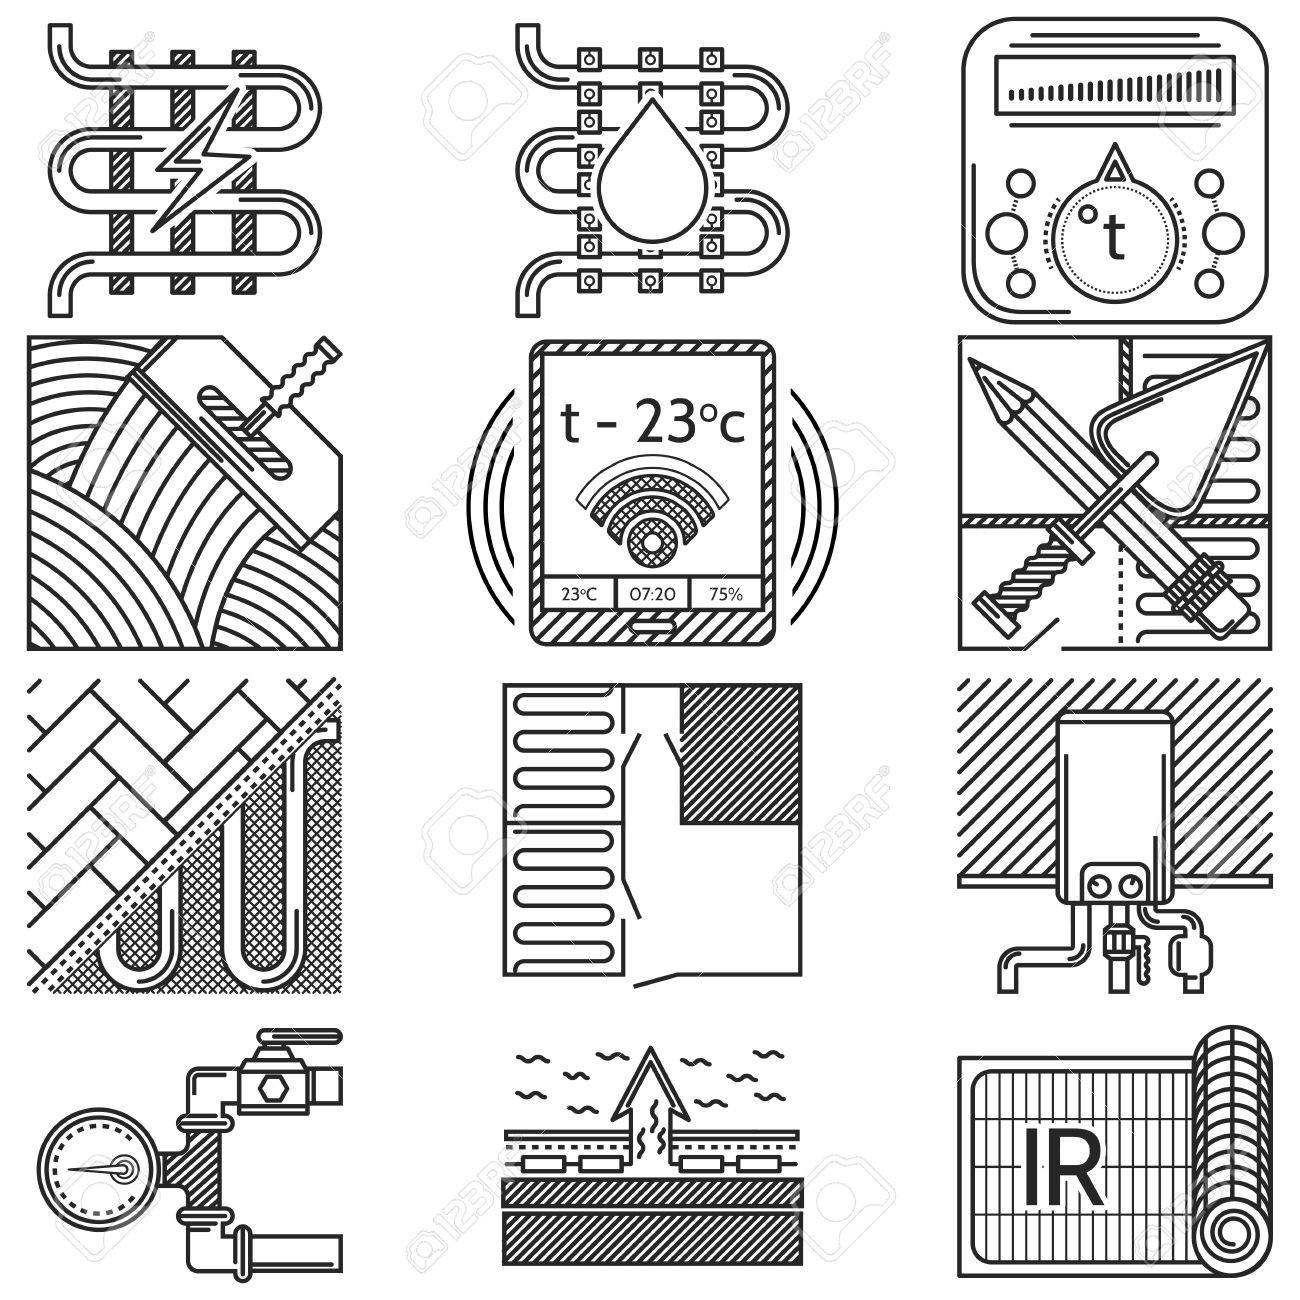 Black flat line icons vector collection of elements and symbols black flat line icons vector collection of elements and symbols for heated floor service or business biocorpaavc Gallery